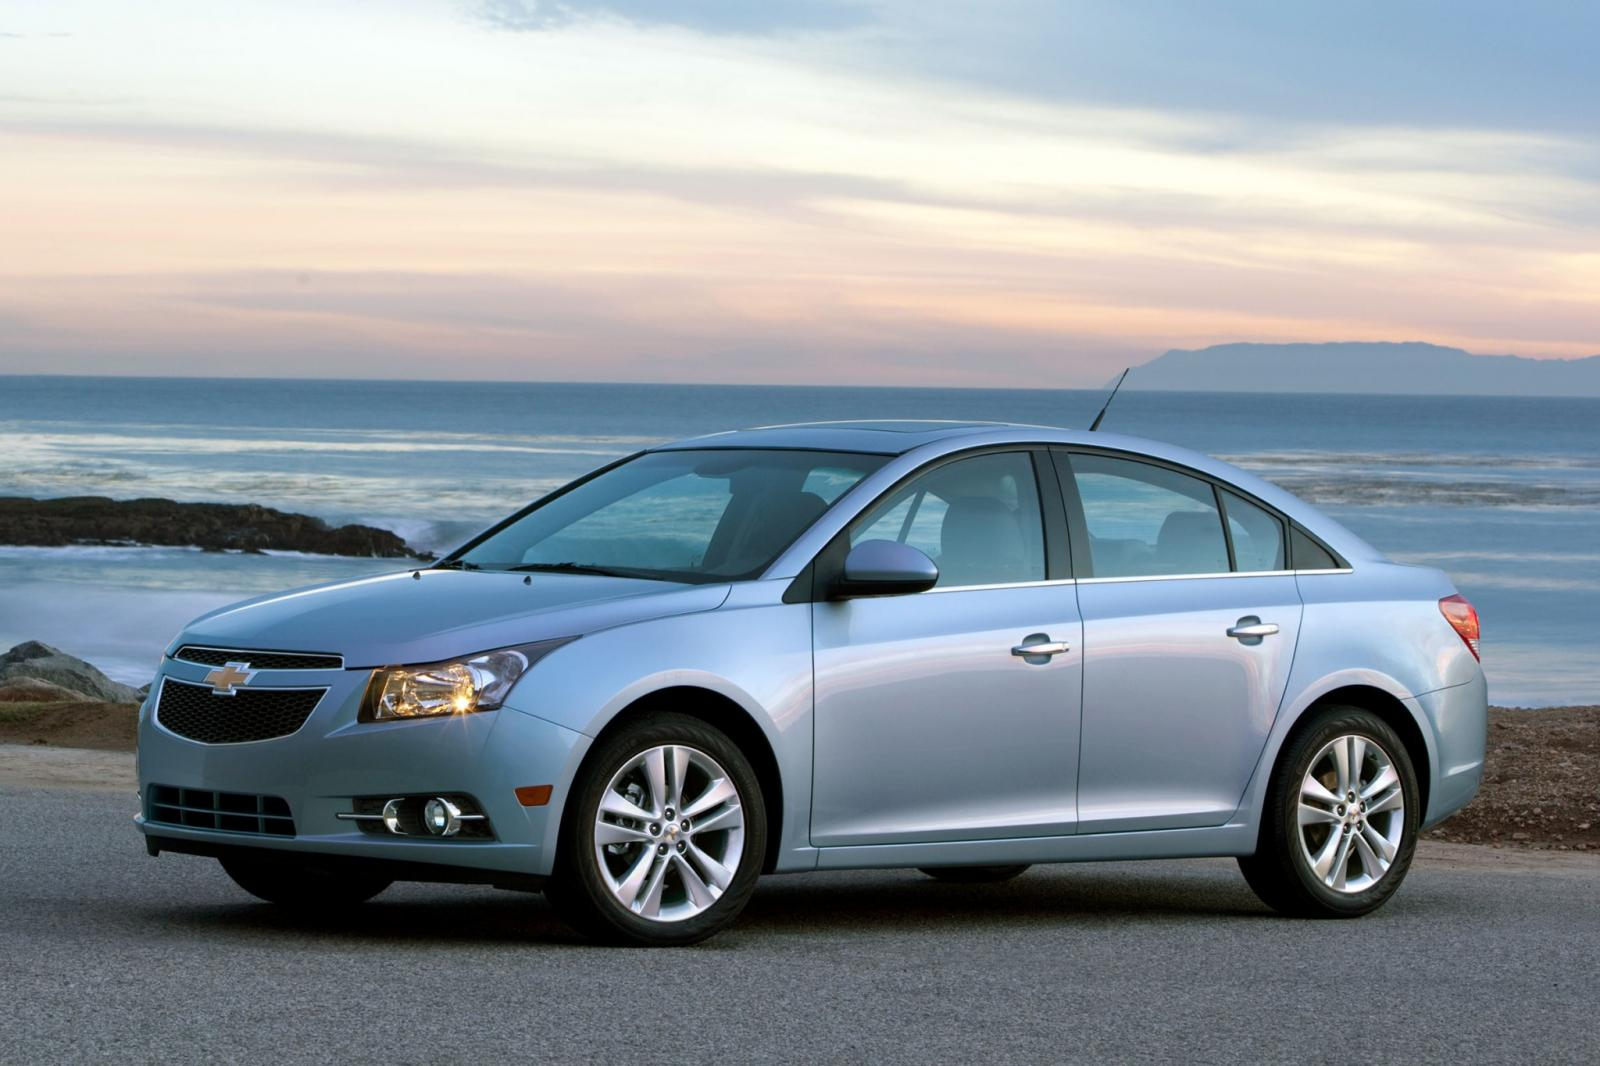 2012 chevrolet cruze information and photos zombiedrive. Black Bedroom Furniture Sets. Home Design Ideas